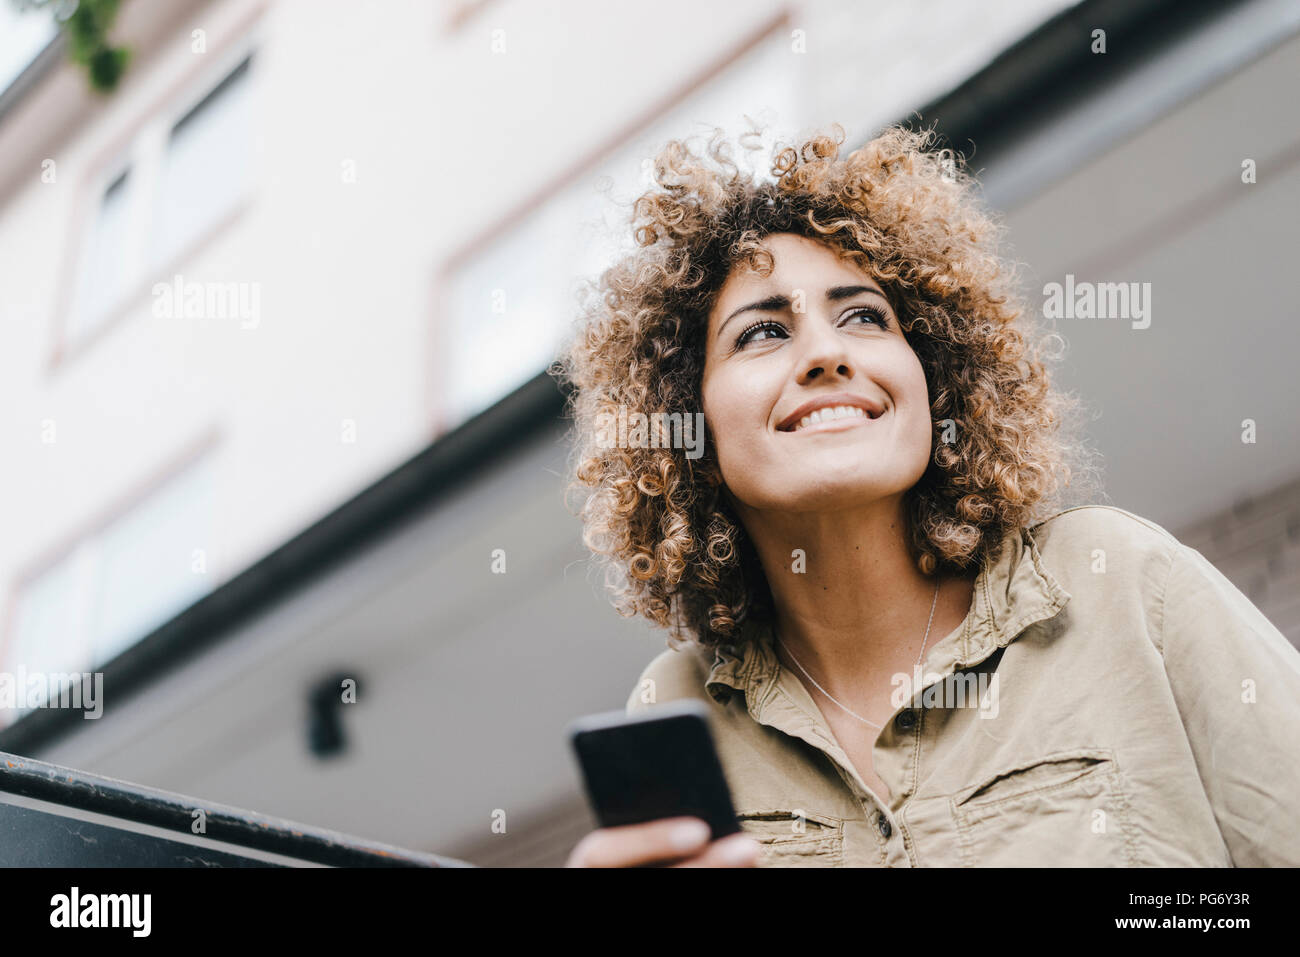 Woman in the city using smartphone Stock Photo